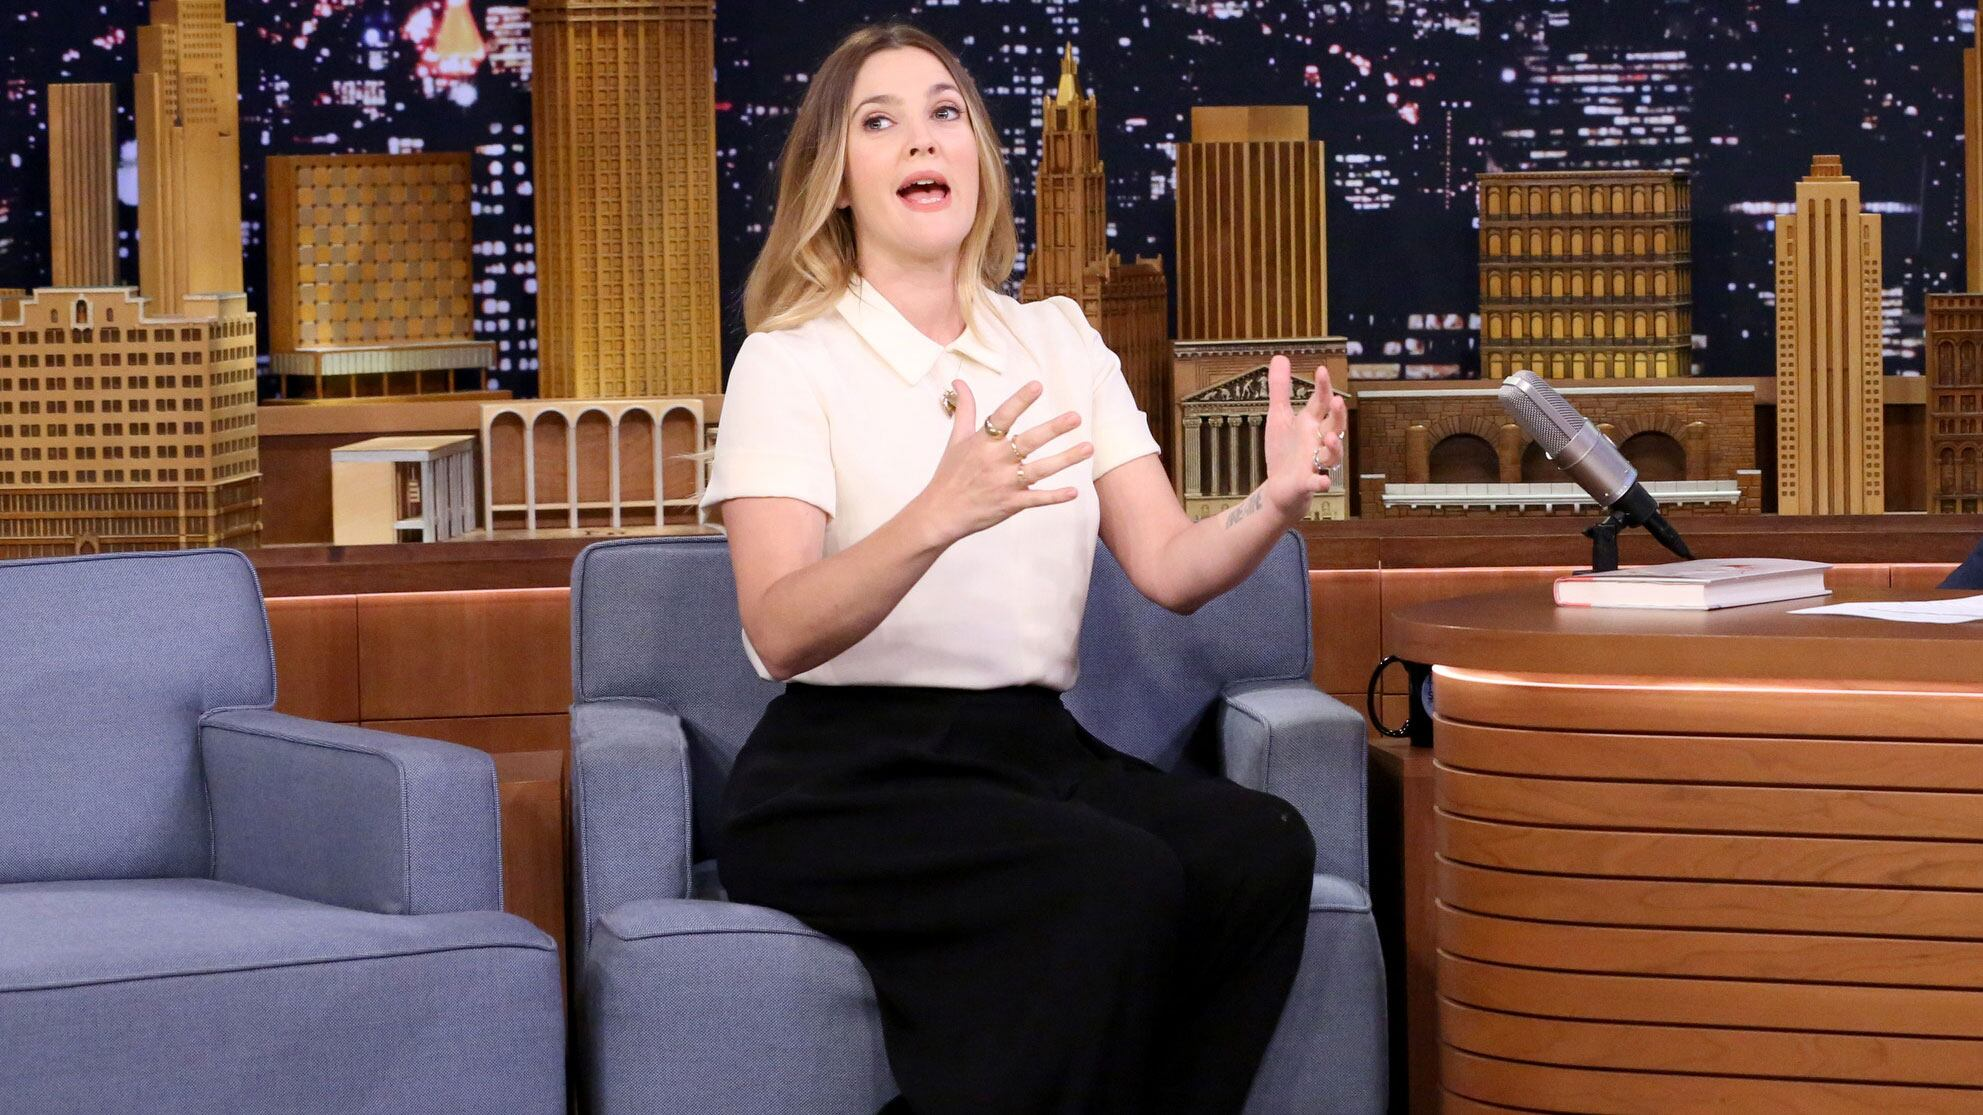 Drew Barrymore Crashed an RV into a Gas Station